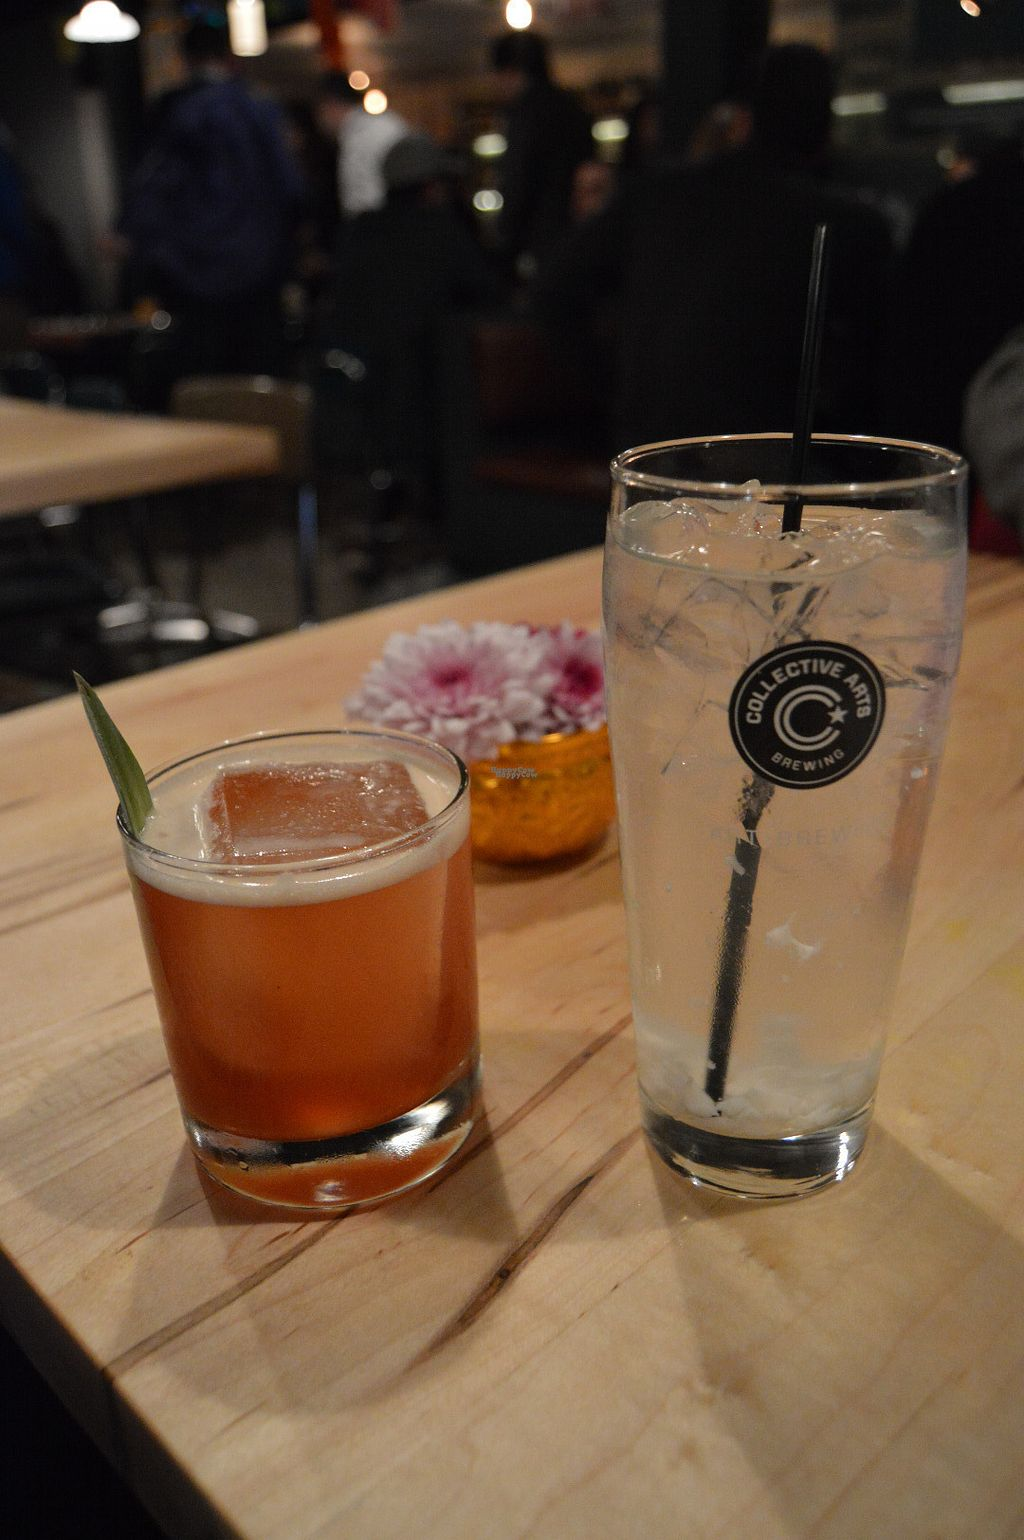 """Photo of Sabai Sabai  by <a href=""""/members/profile/Vegan%20GiGi"""">Vegan GiGi</a> <br/>Wagtails & Pipits cocktail (left) and roasted coconut water (right). Yum! <br/> October 21, 2016  - <a href='/contact/abuse/image/60010/183450'>Report</a>"""